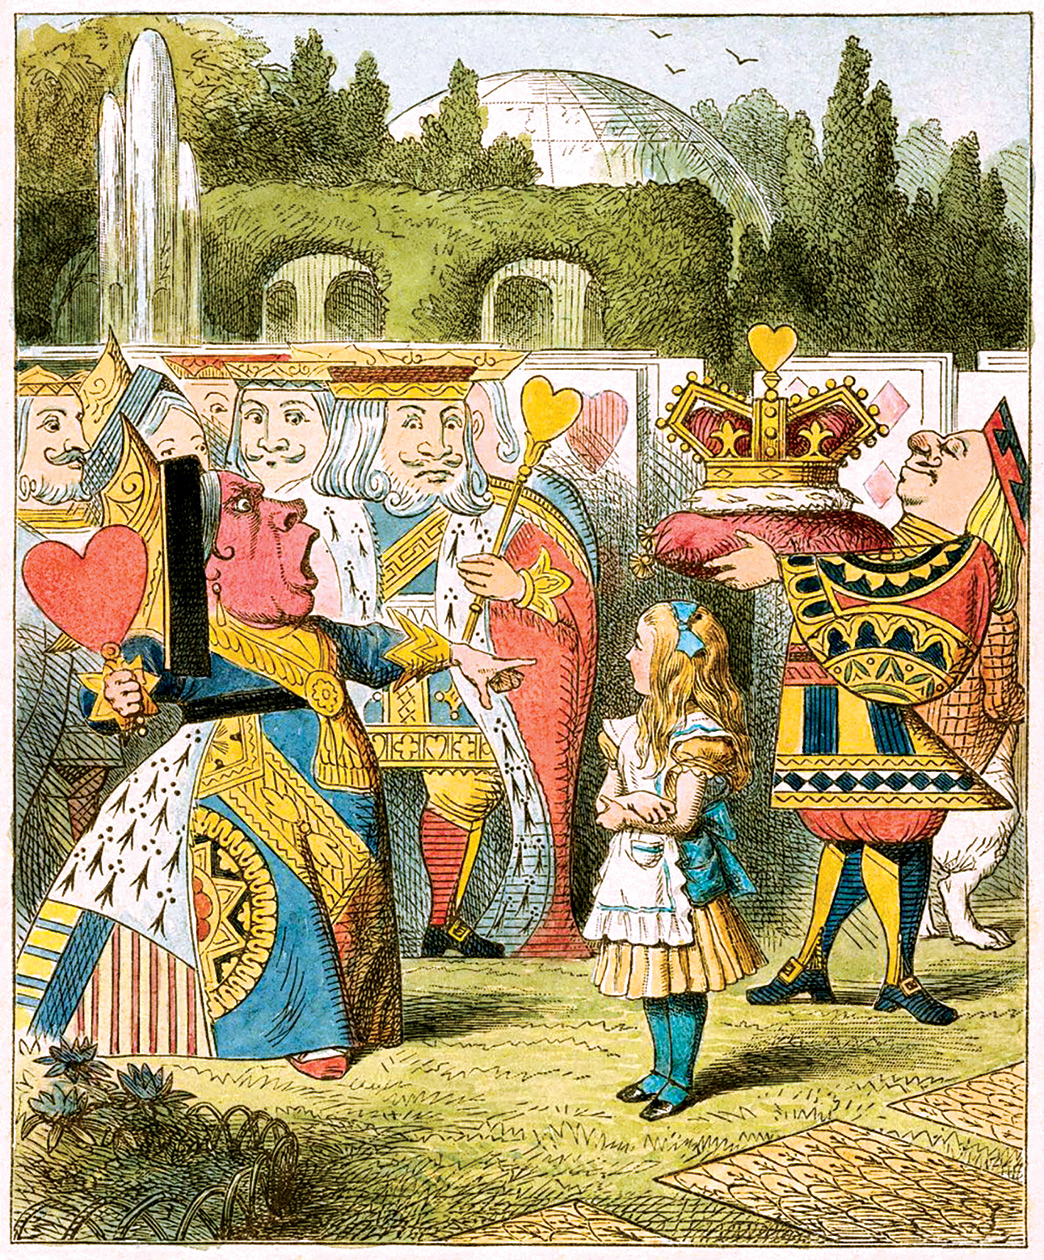 Illustration by John Tenniel for 'Alice's Adventures in Wonderland by Lewis Carroll